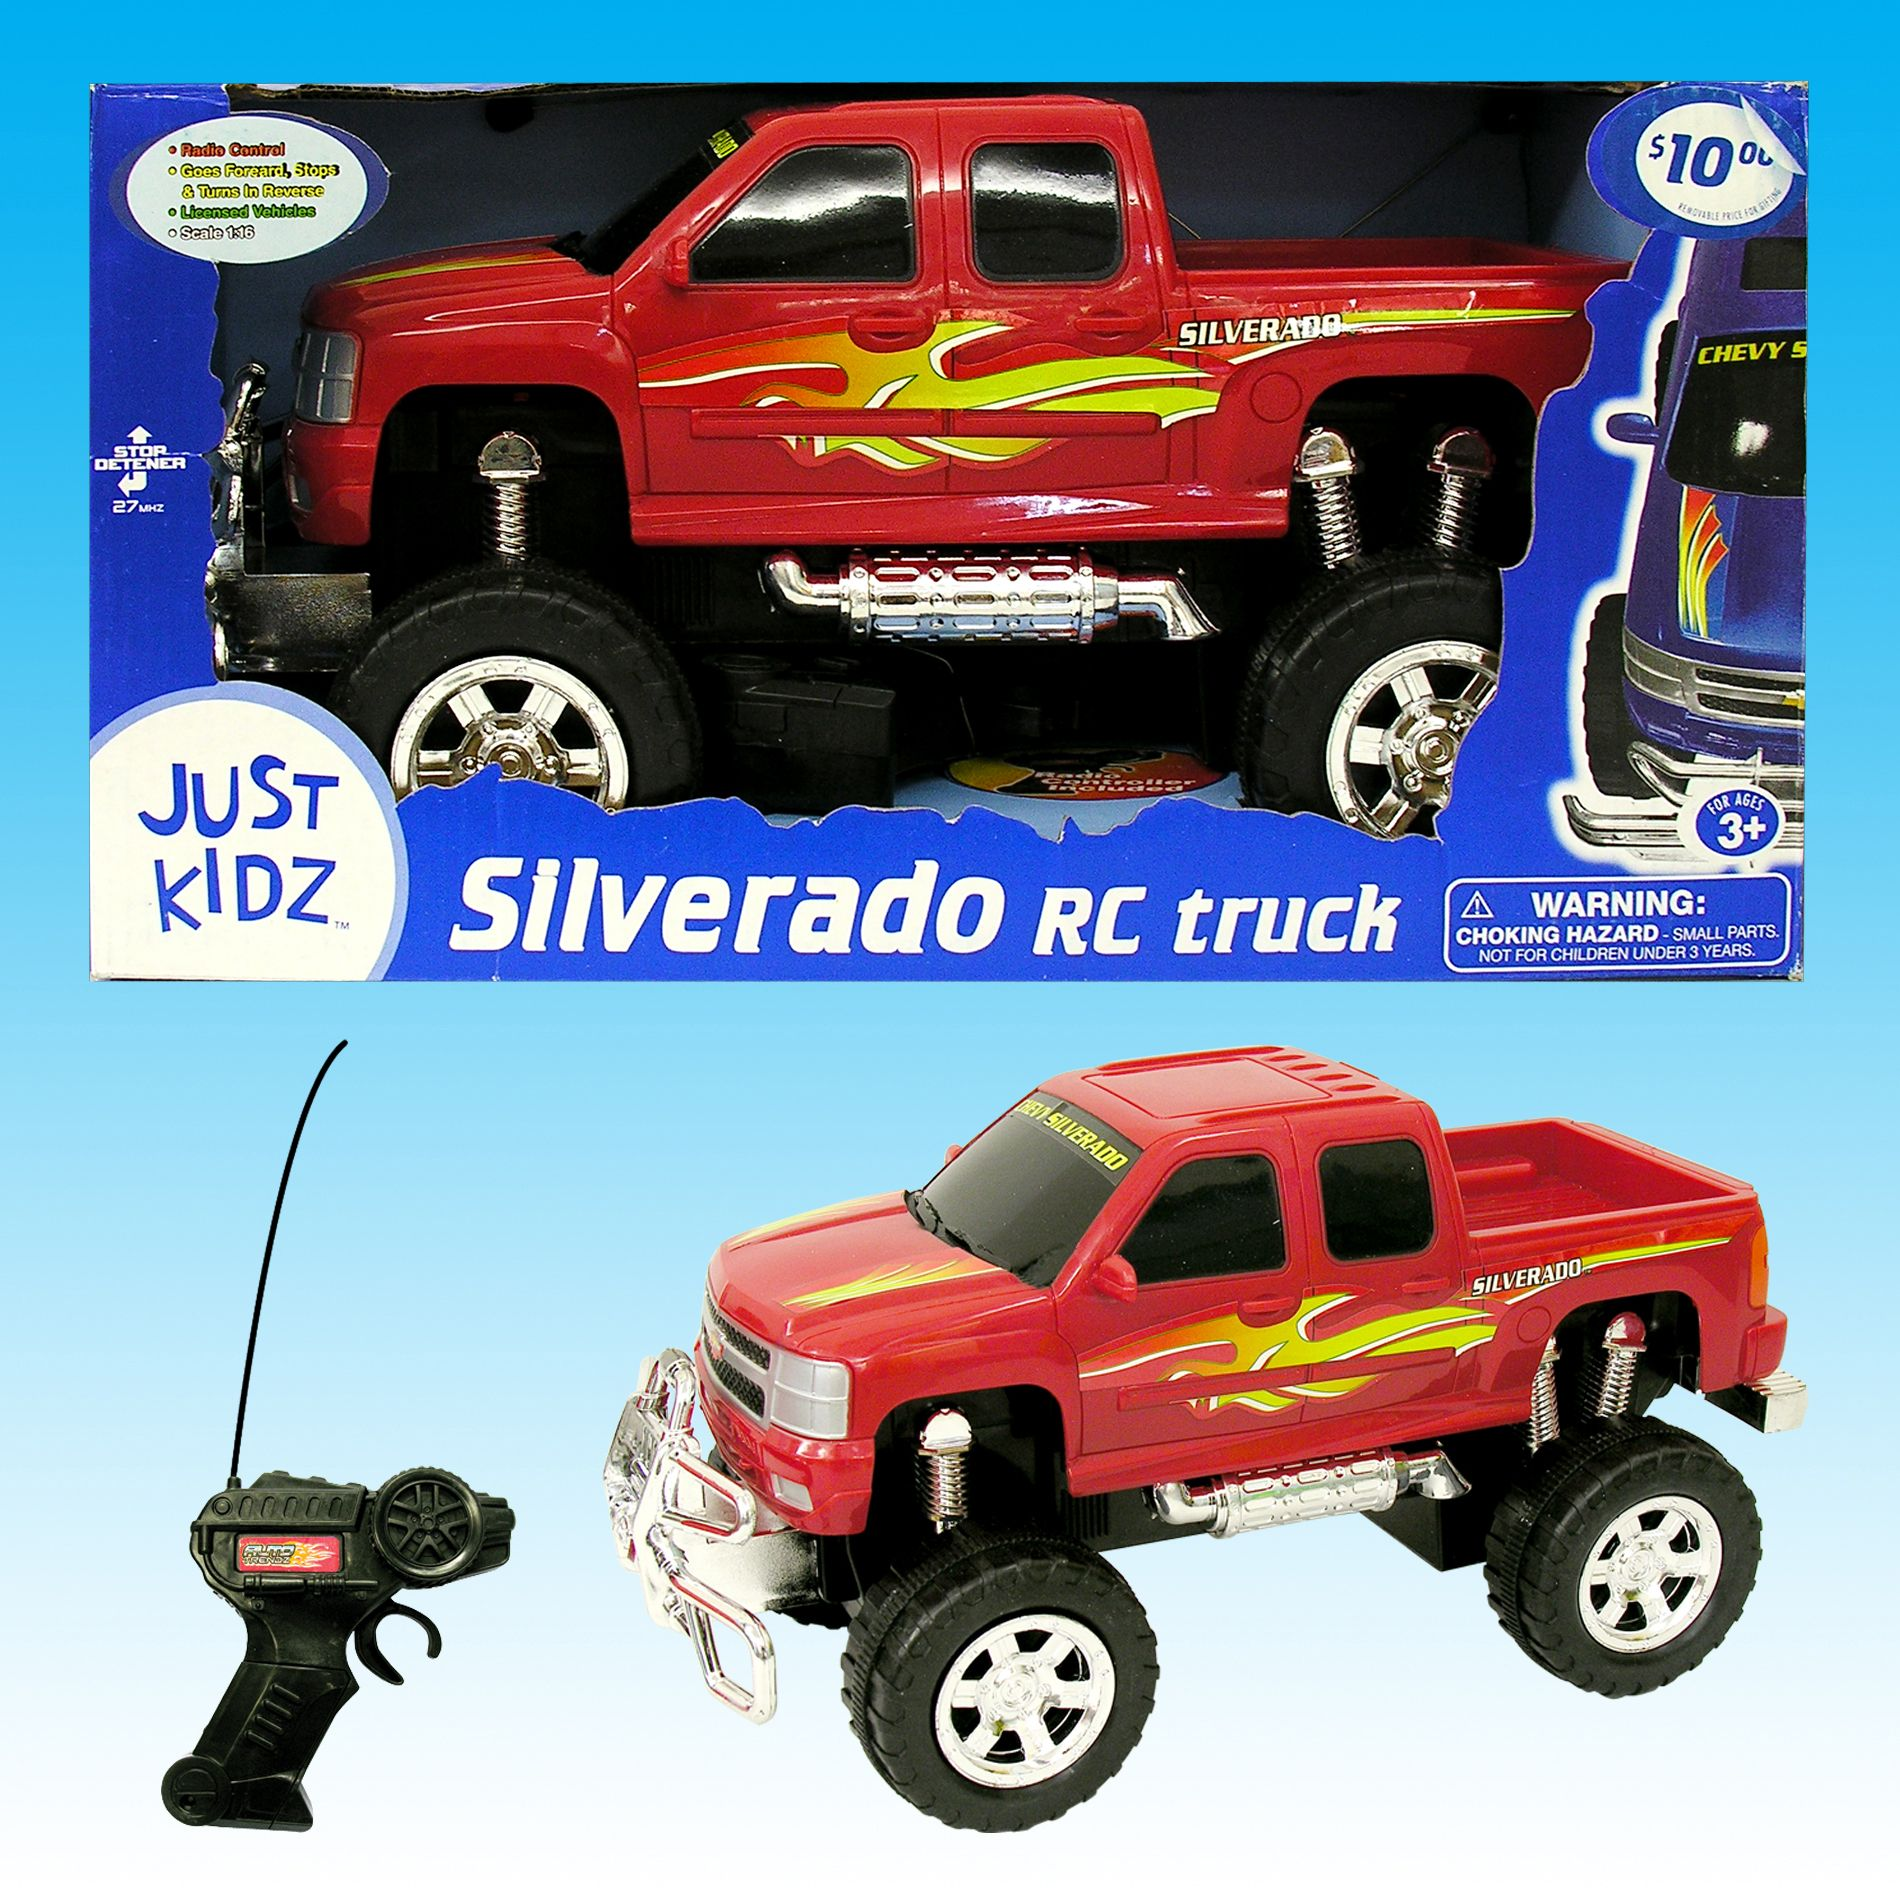 1:16 Scale Licensed Silverado RC Truck                                                                                           at mygofer.com